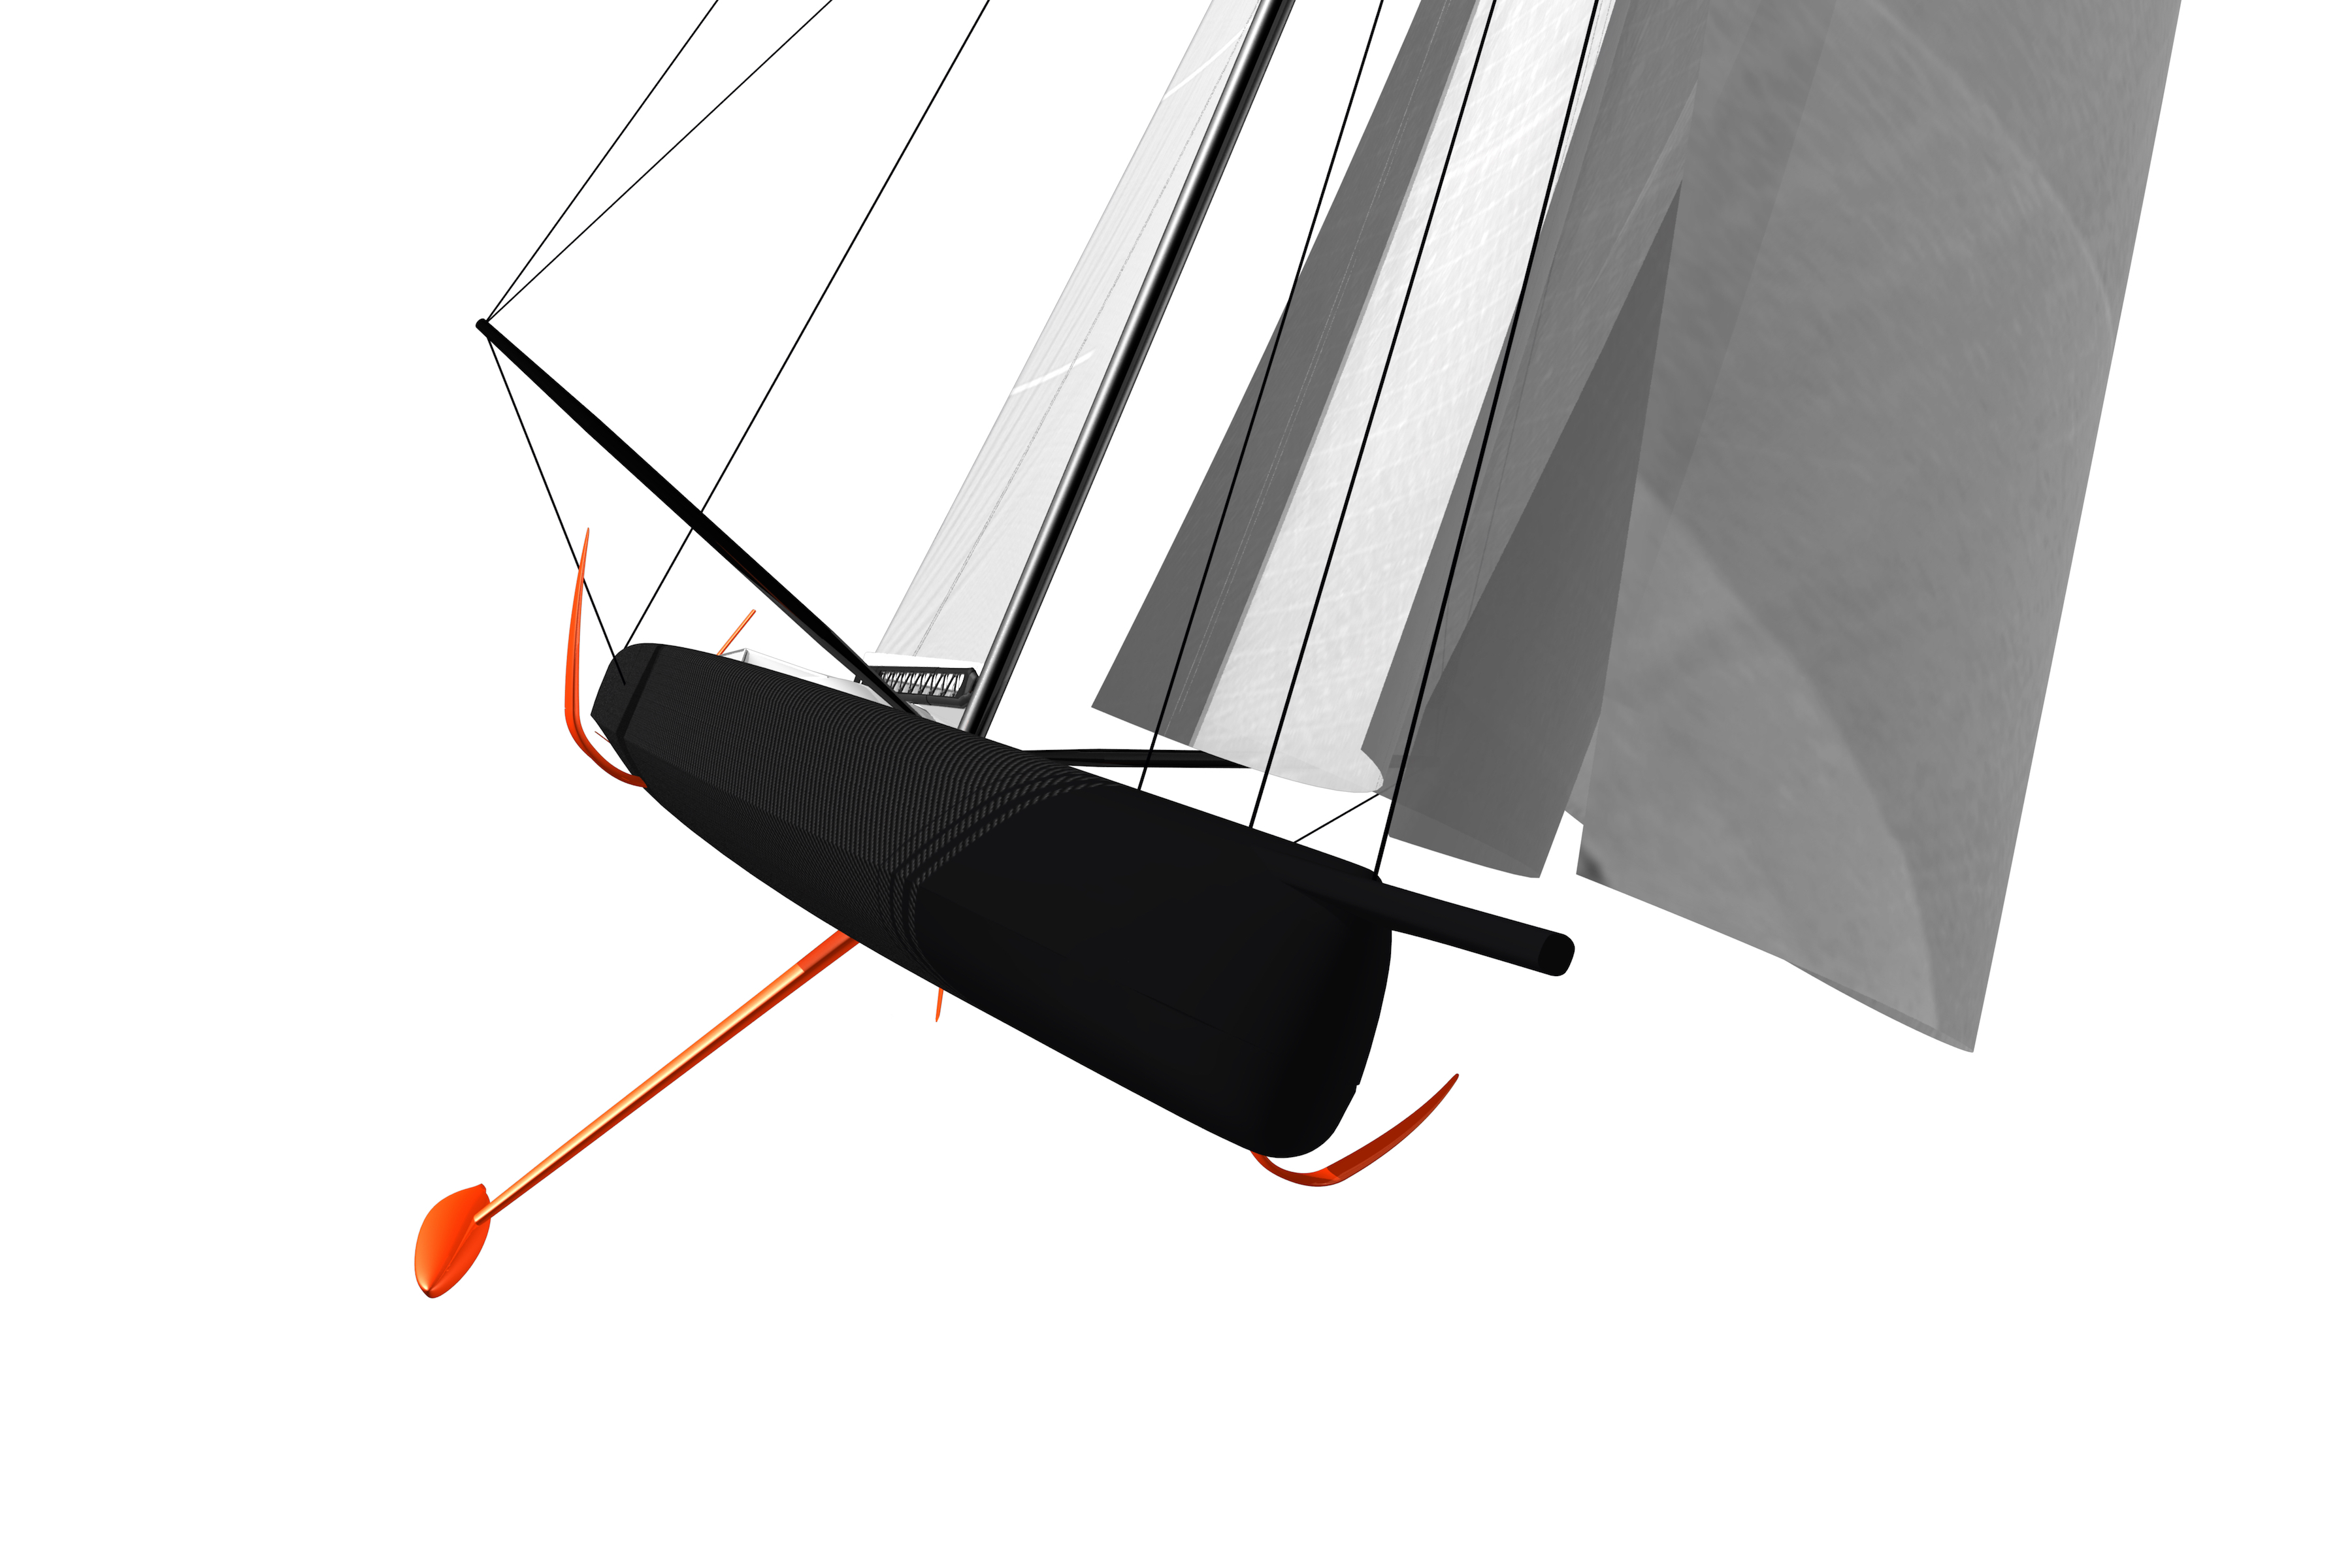 IMOCA 60 boats have been invited to participate in the next race